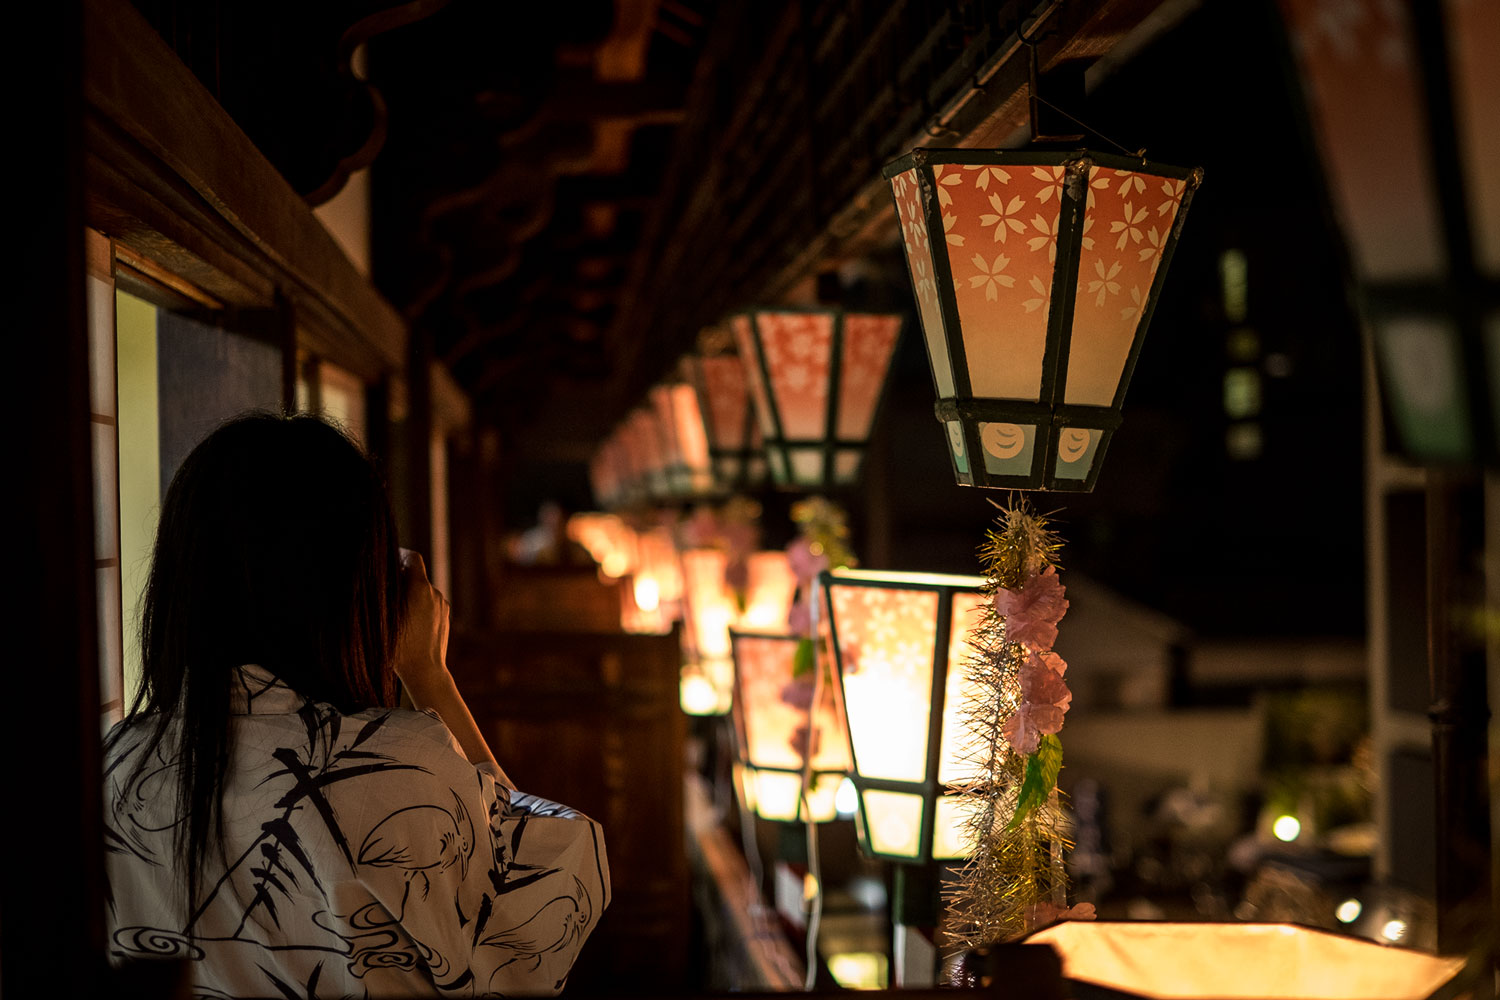 A customer in Yukata taking pictures of the terrace.